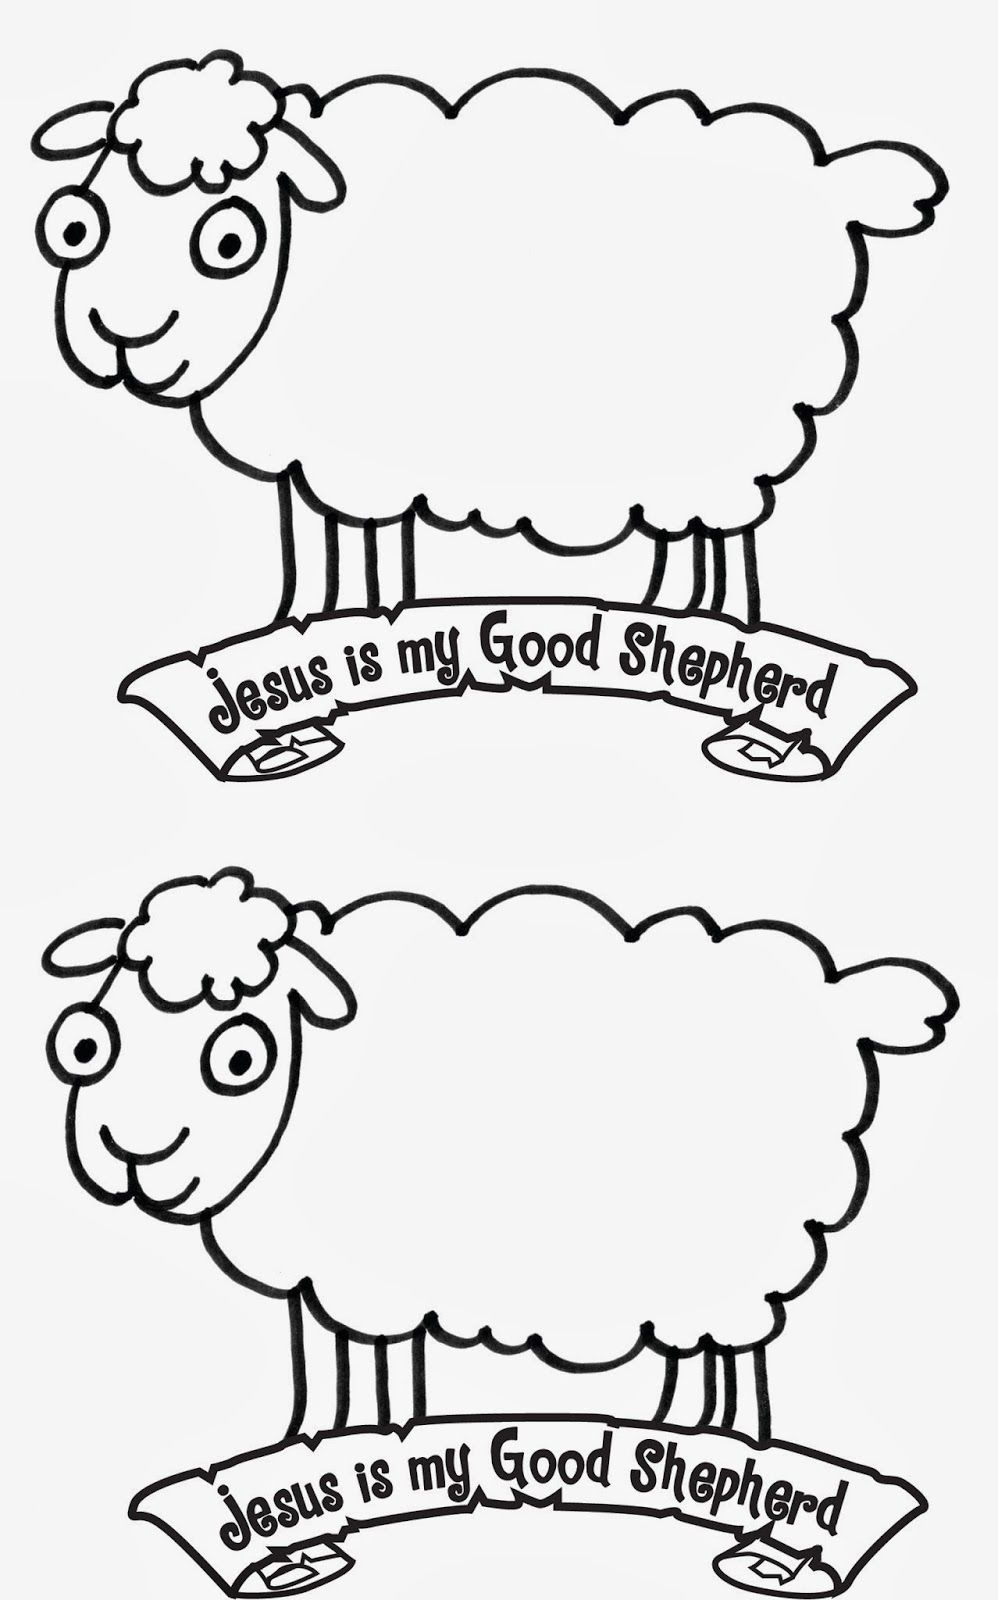 Jesus Is The Good Shepherd Sheep Bible School Crafts Sheep